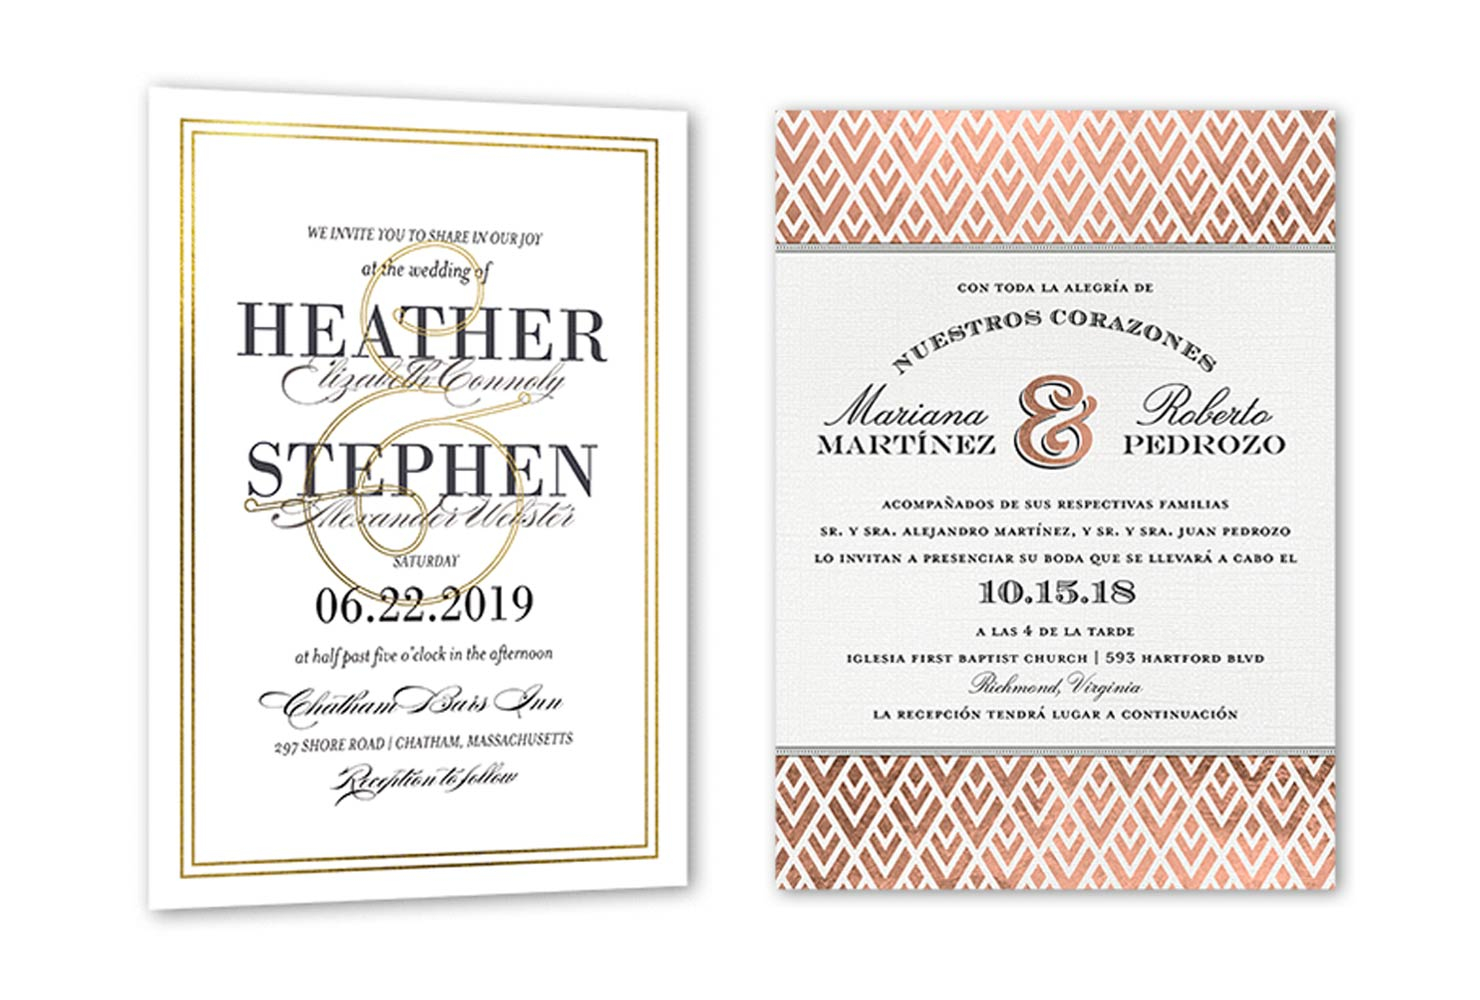 35 Wedding Invitation Wording Examples 2019 Shutterfly throughout sizing 1480 X 1000